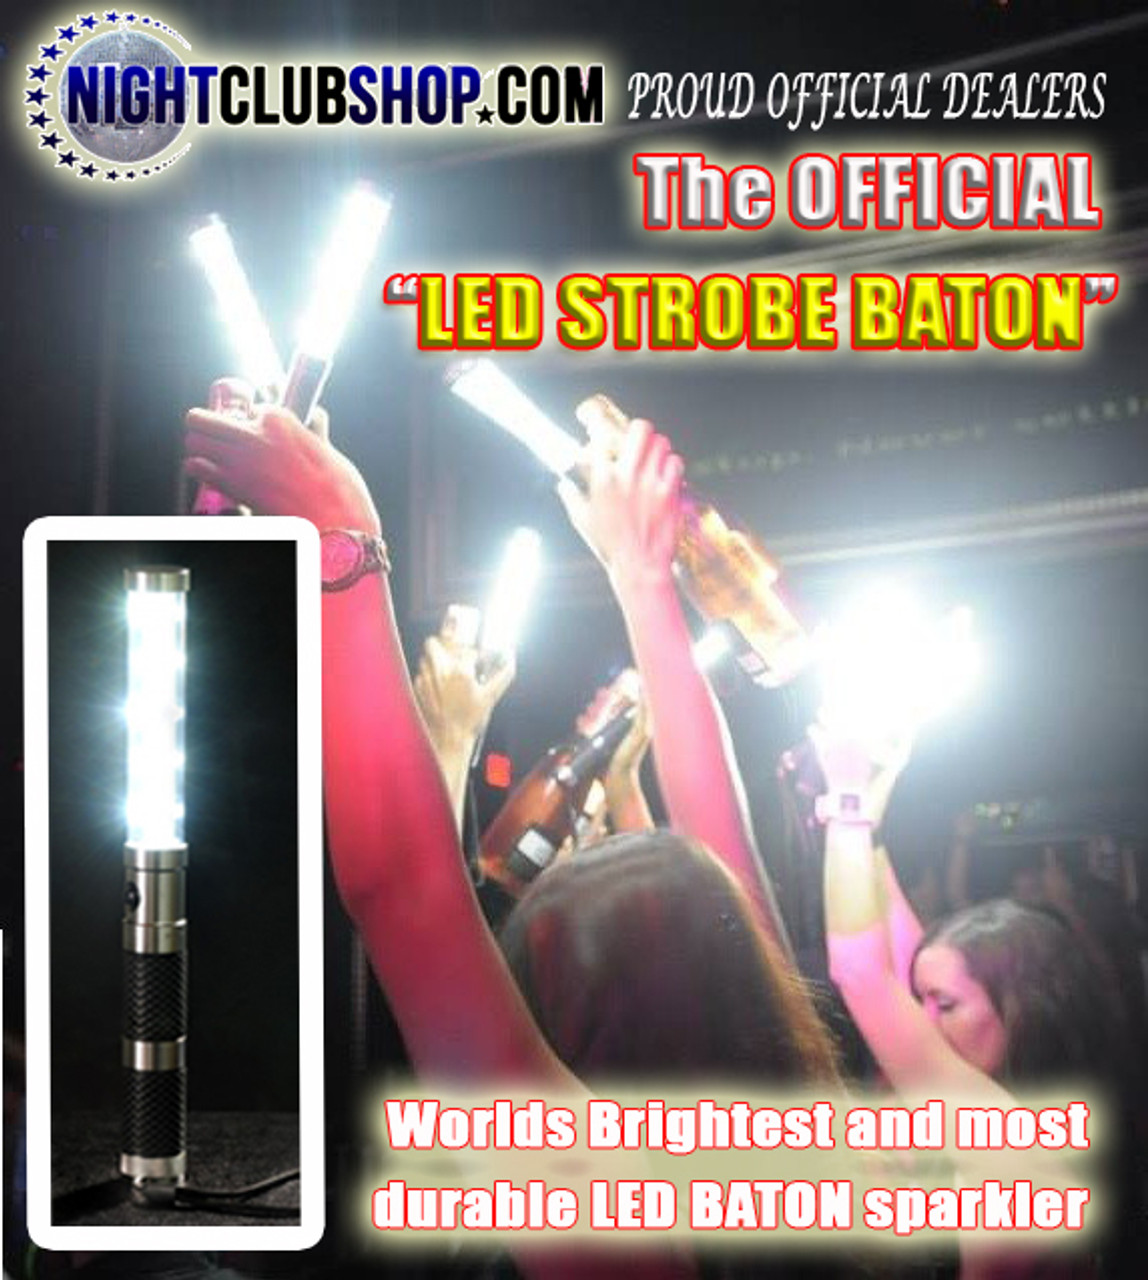 LED STROBE BATON, LED, STROBE, BATON, Electronic, flash, wand,bottle service, bottle delivery, alternative, sparkler, bottle sparkler,Colors